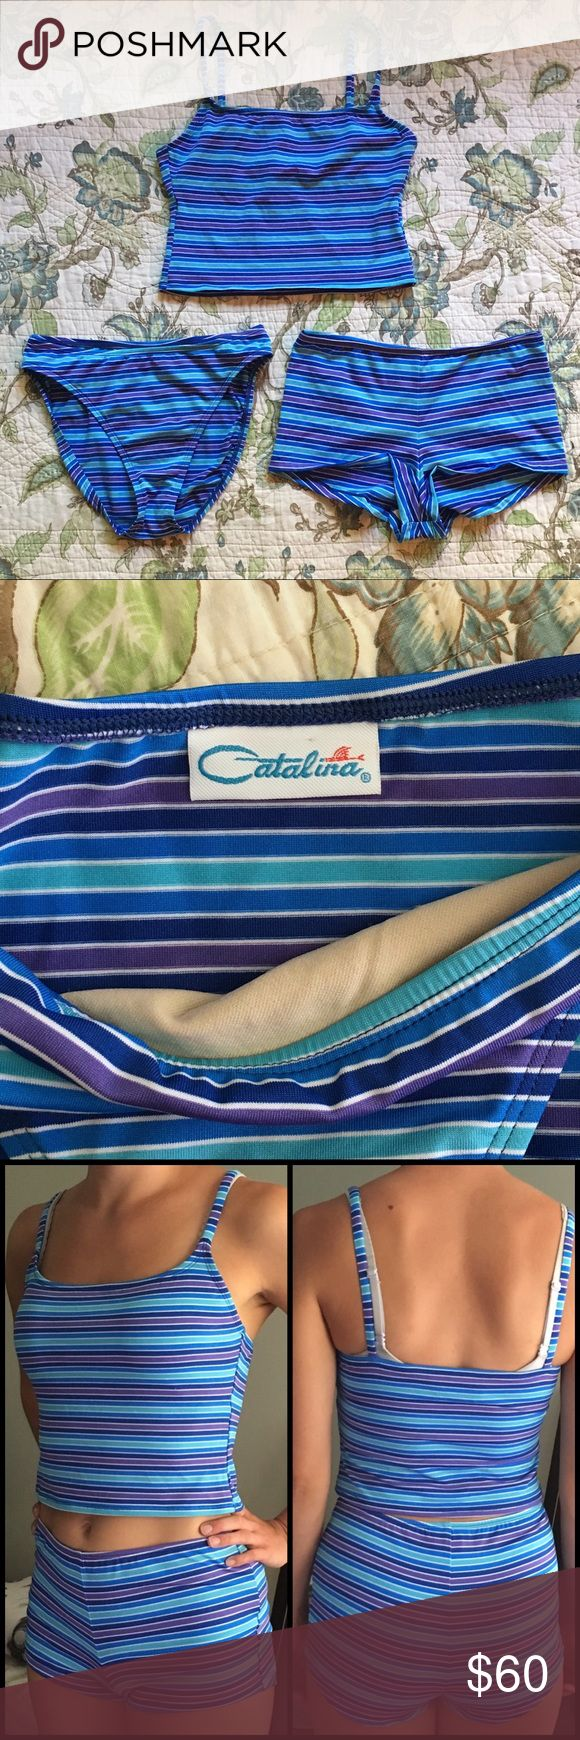 "Vintage 90s striped swimsuit set Vintage 90s striped swimsuit set. Purple blue and white striped matching tankini set. The set comes 1 tankini tank top and 2 swim bottoms one being high cut bikini bottoms and the other being high waisted swim shorts. The top has a built in shelf bra, both bottoms are fully lined in the front. Perfect condition. Model is a 34B, 26"" to 27"" waist and wears a size 9 in jeans. Measurements are taken laying flat: armpit to armpit: 15"" length: 16"" Vintage Swim…"